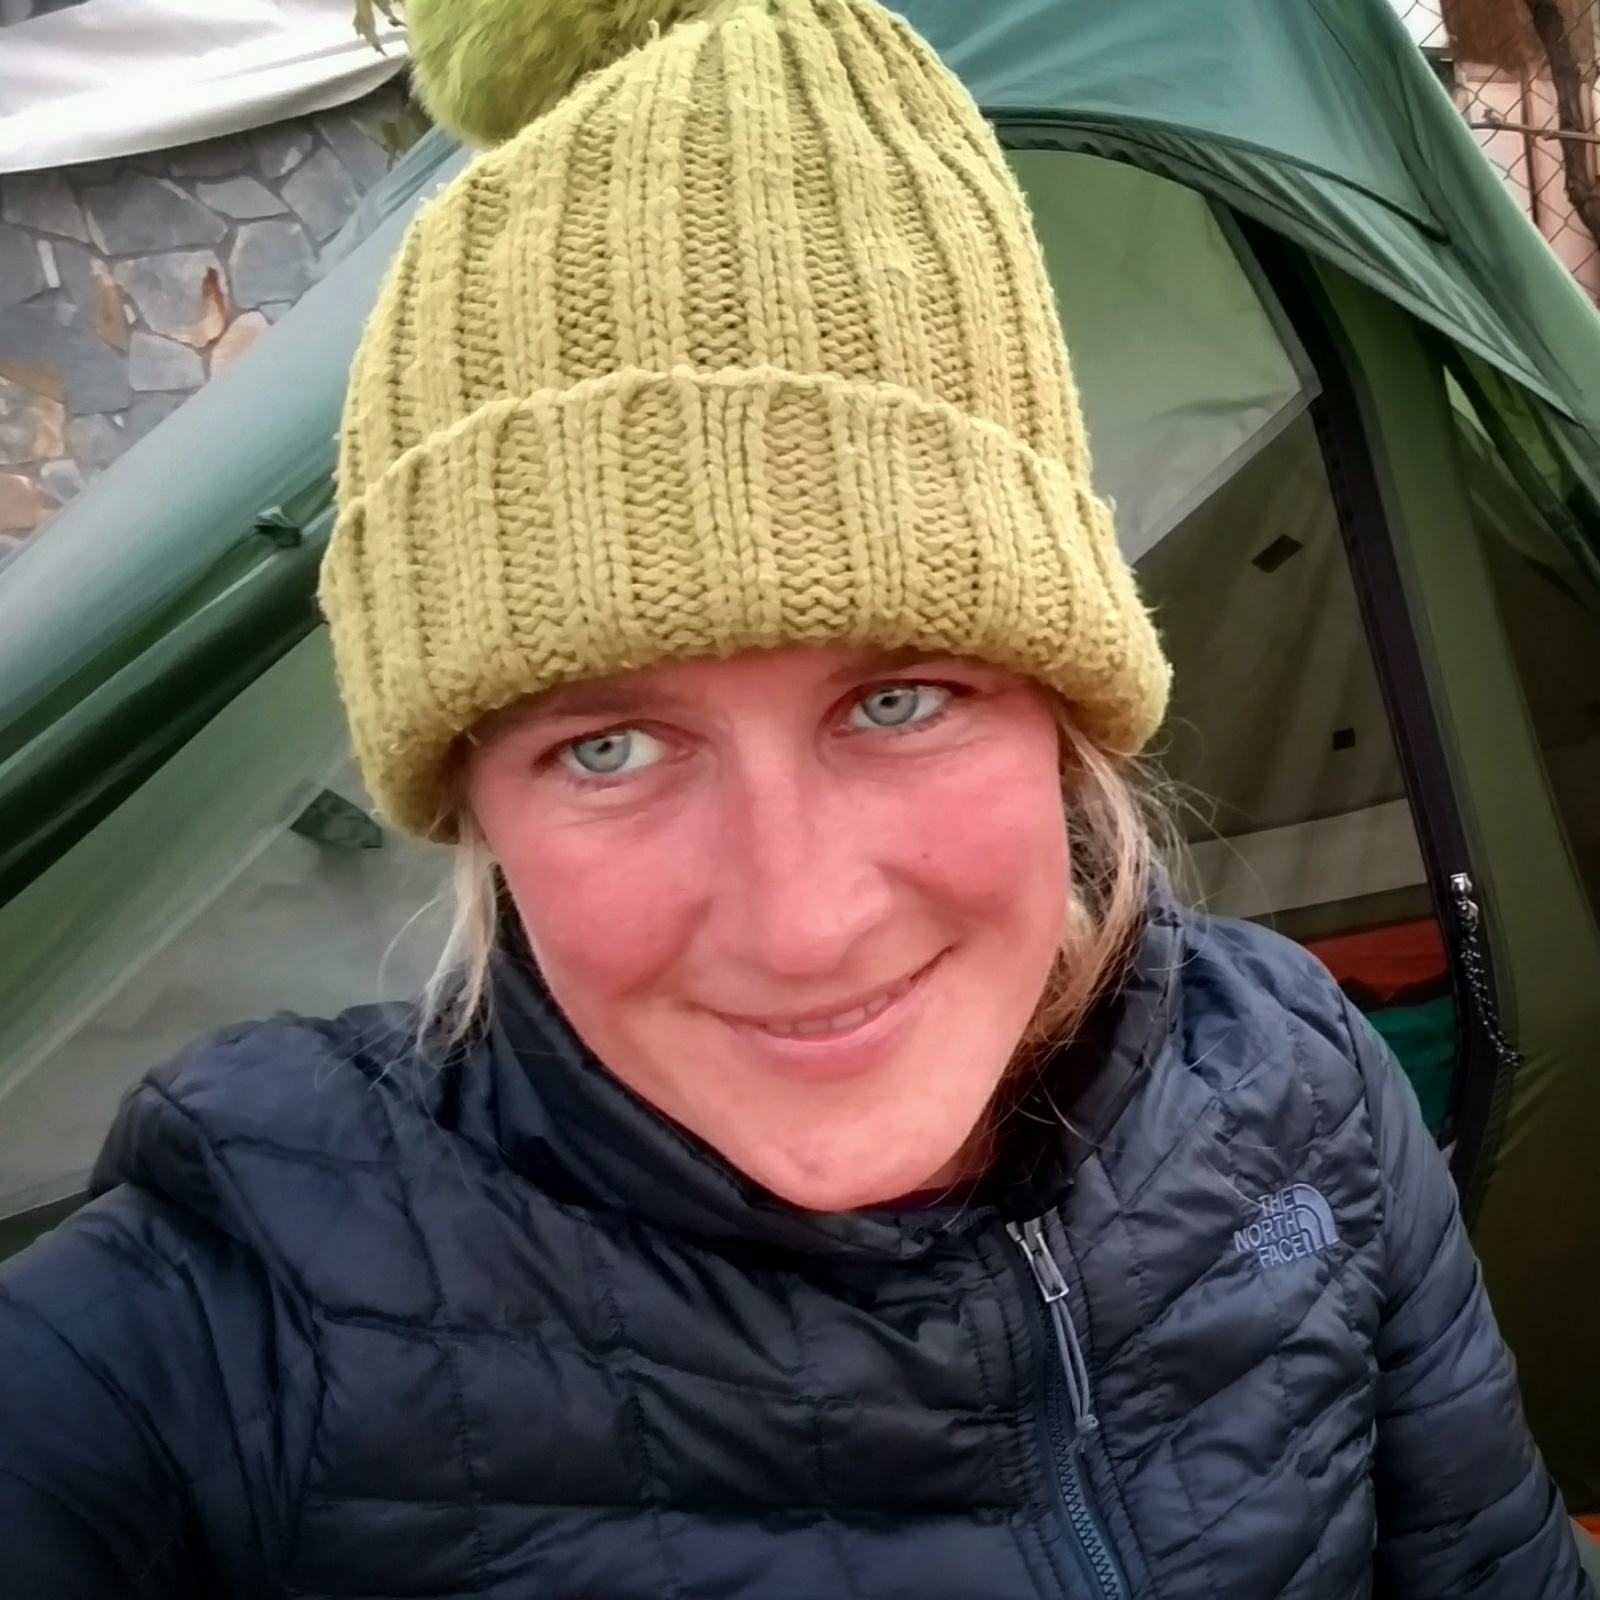 Selfie with beanie | Grom Artic Cold to Indian Summer and back